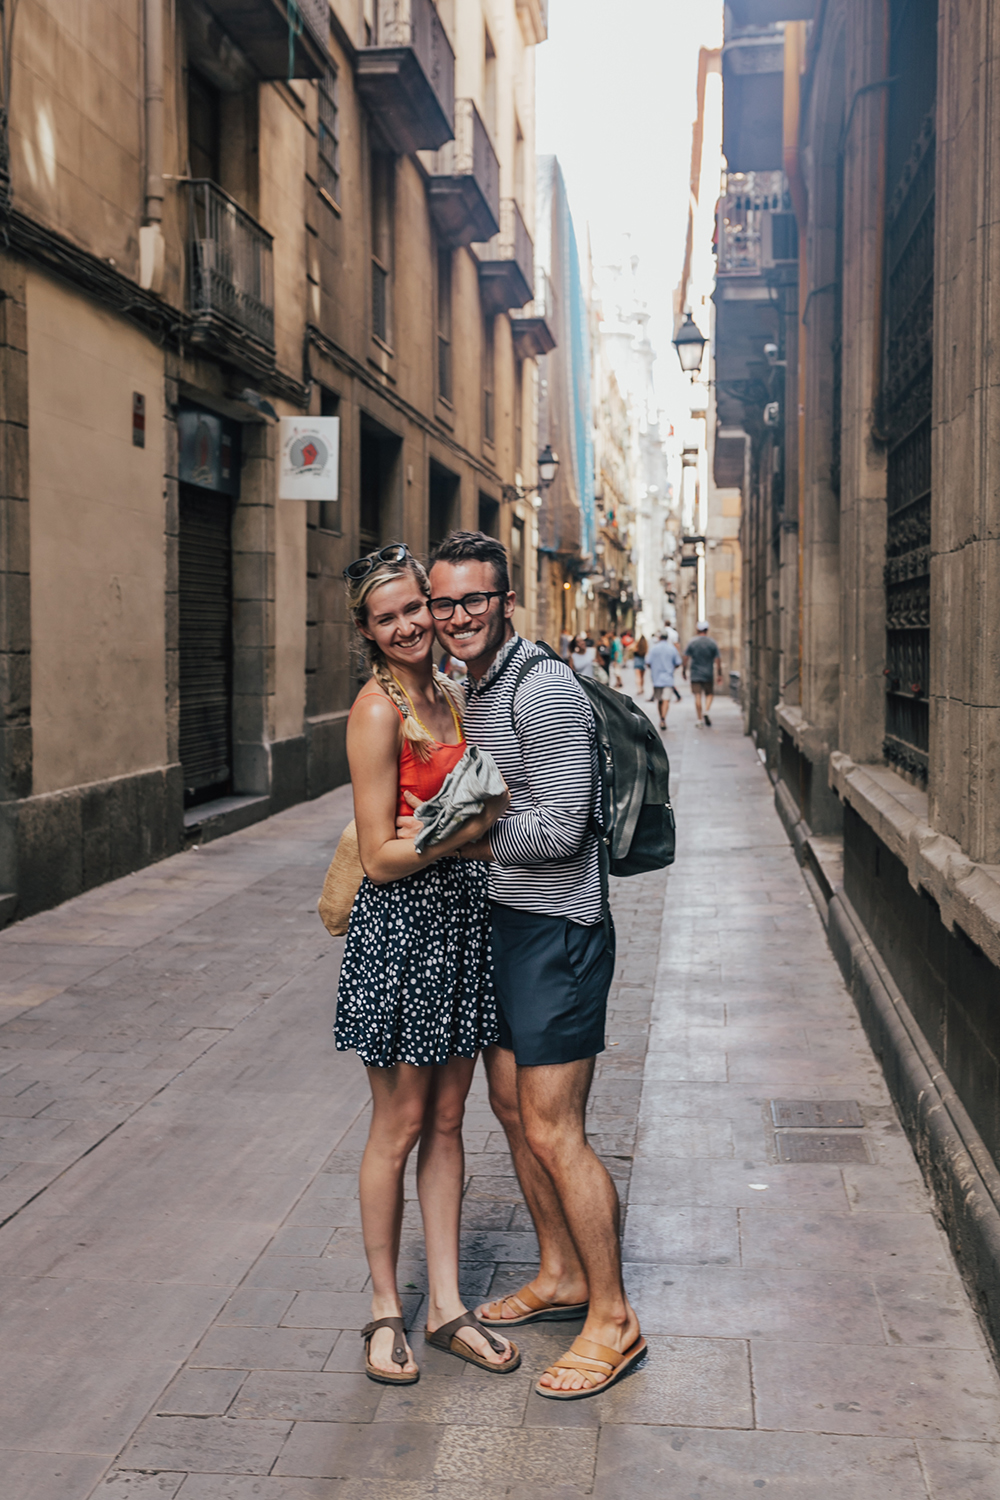 livvyland-blog-olivia-watson-travel-fashion-blogger-barcelona-spain-las-ramblas-colorful-buildings-1